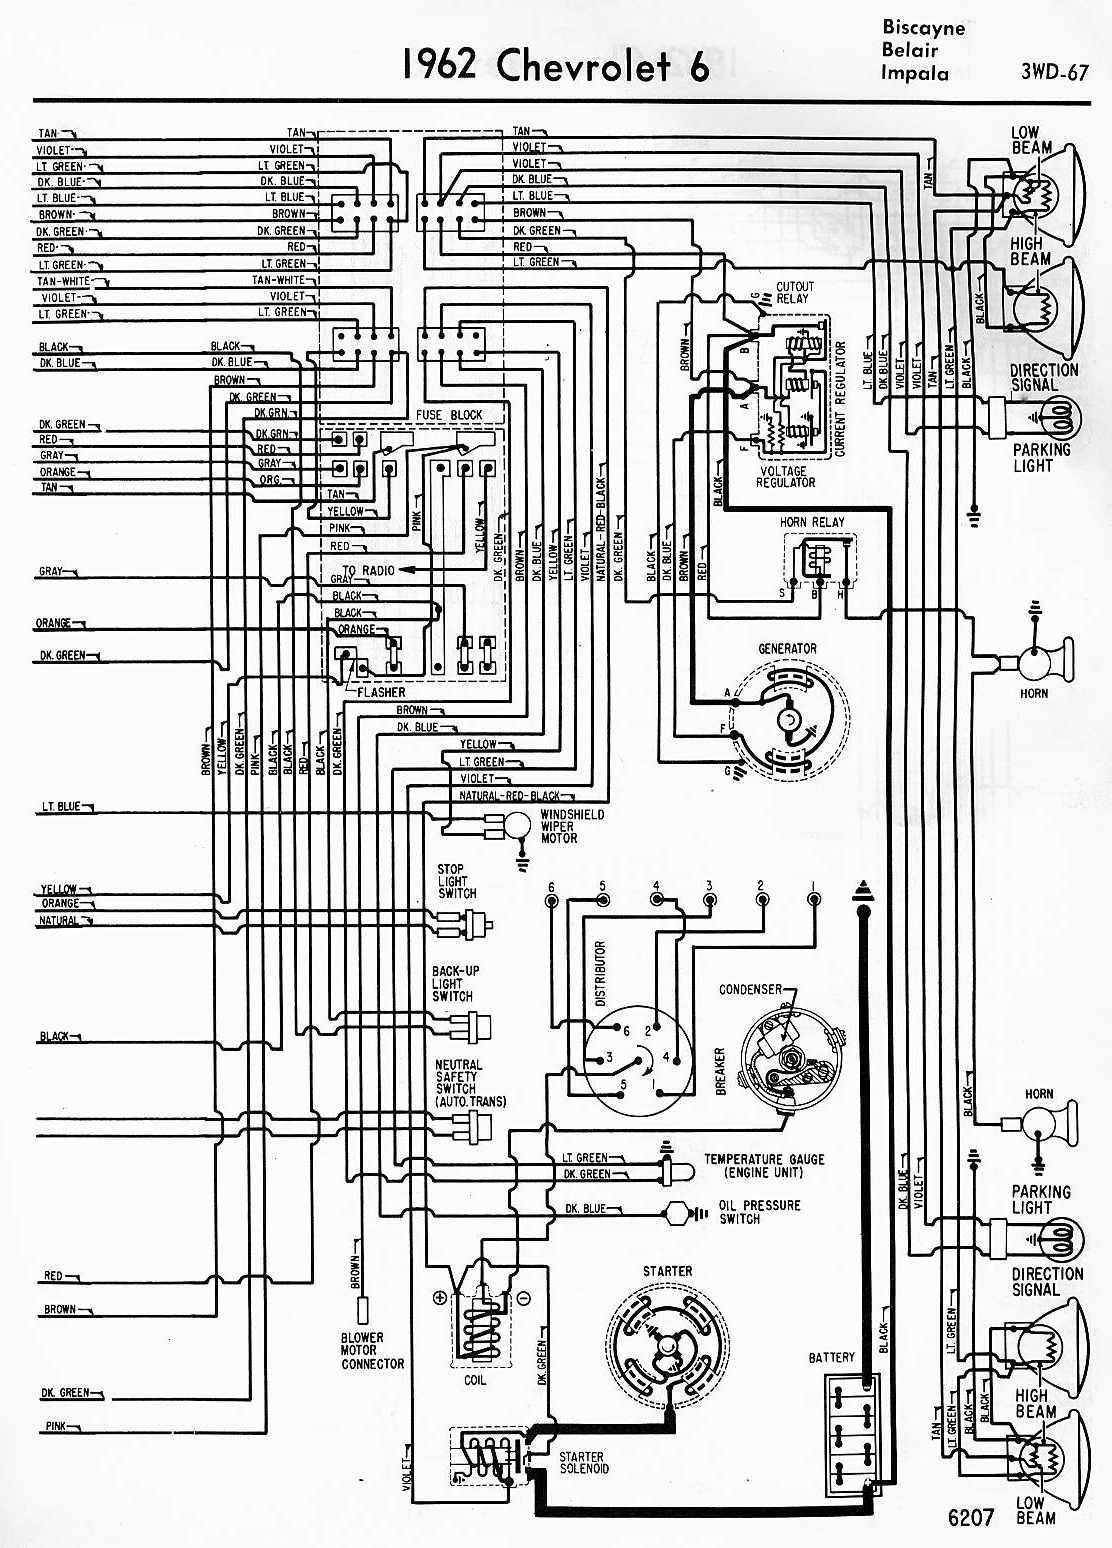 99 Mustang Automatic Transmission Wiring Harness Electrical Diagram 1964 Impala Engine Electricity Ford Kits